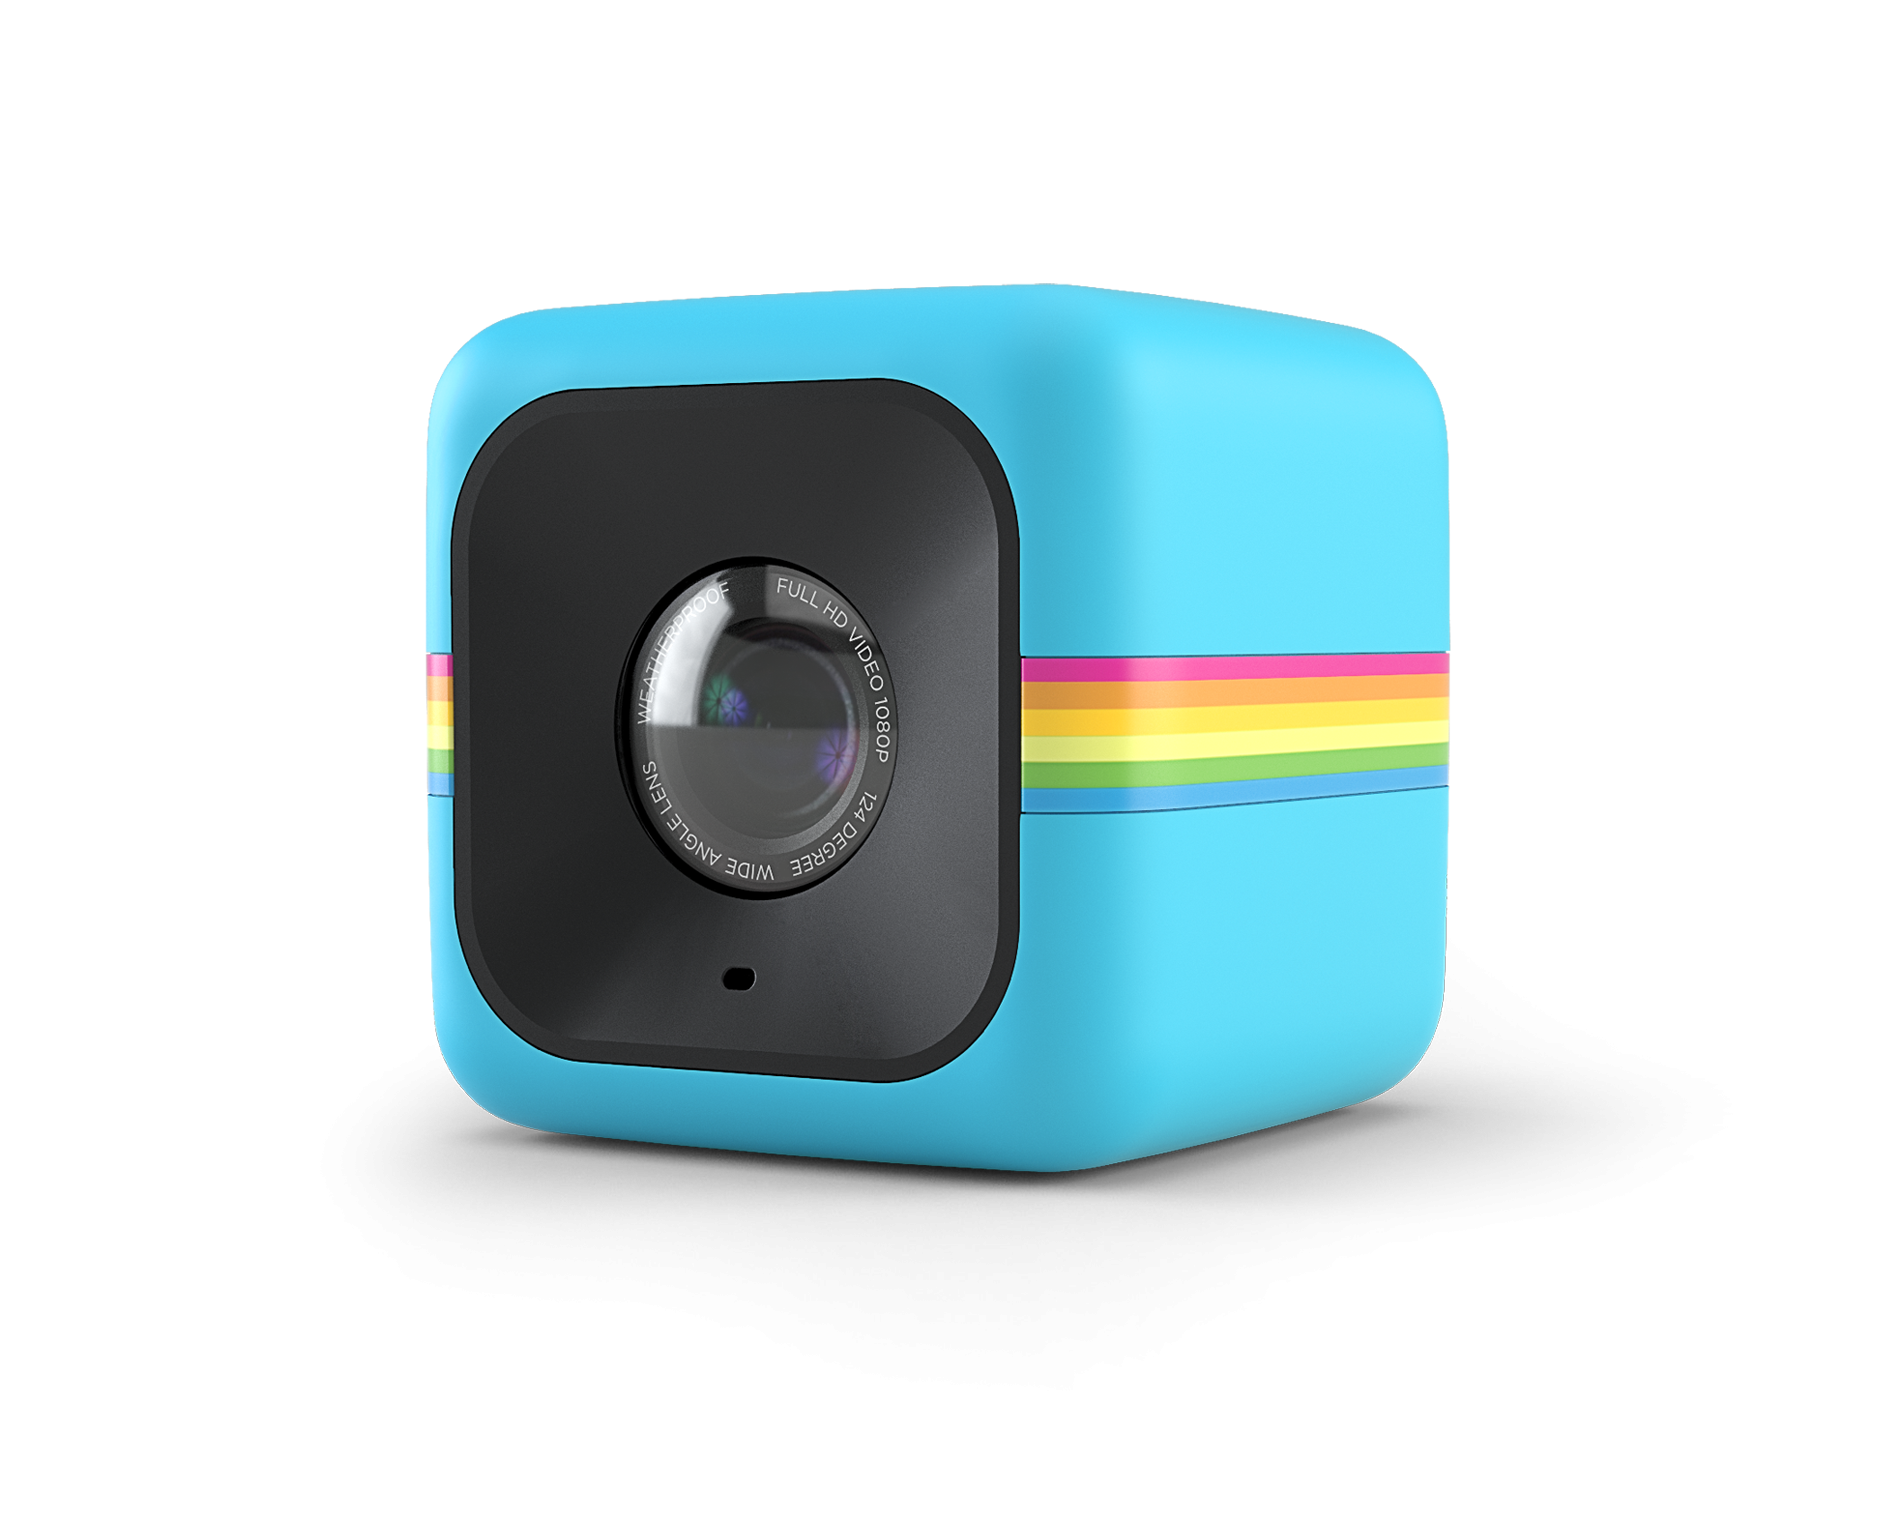 Polaroid cube png. Gear review